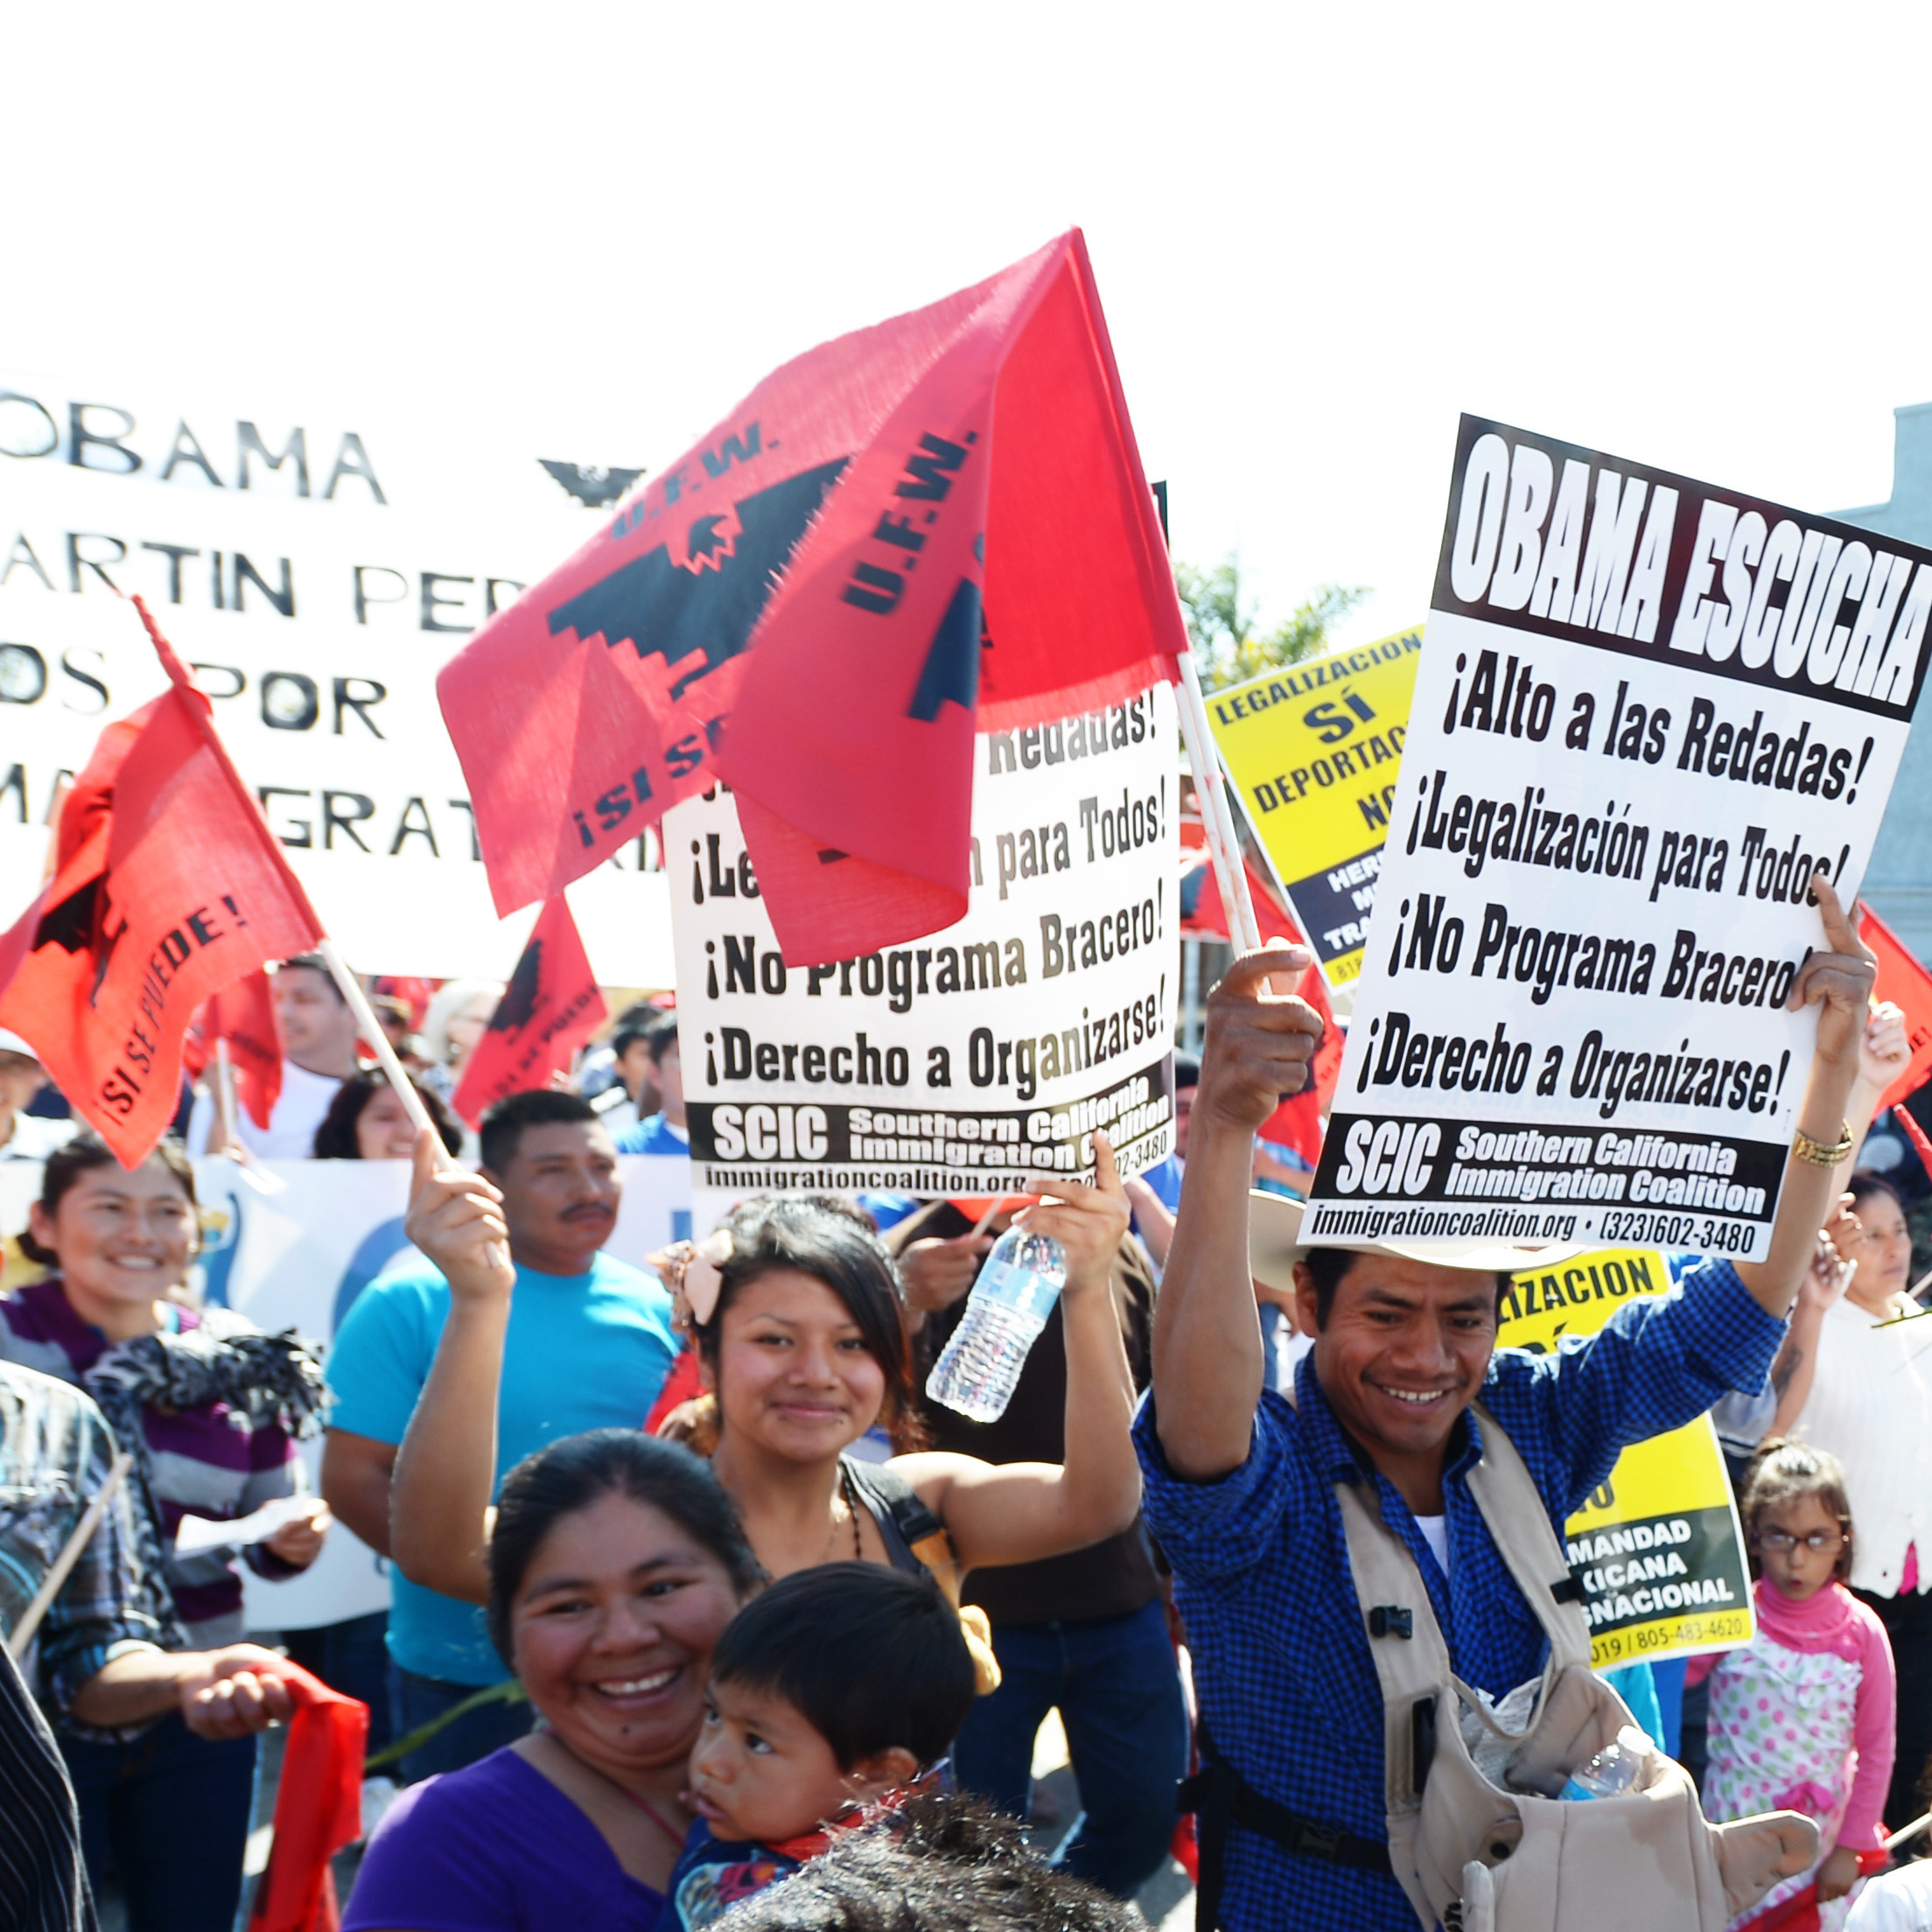 Demonstrators march through the streets of Oxnard, Calif., on March 24, advocating for an immigration overhaul and honoring the legacy of Cesar E. Chavez, founder of the United Farm Workers of America.